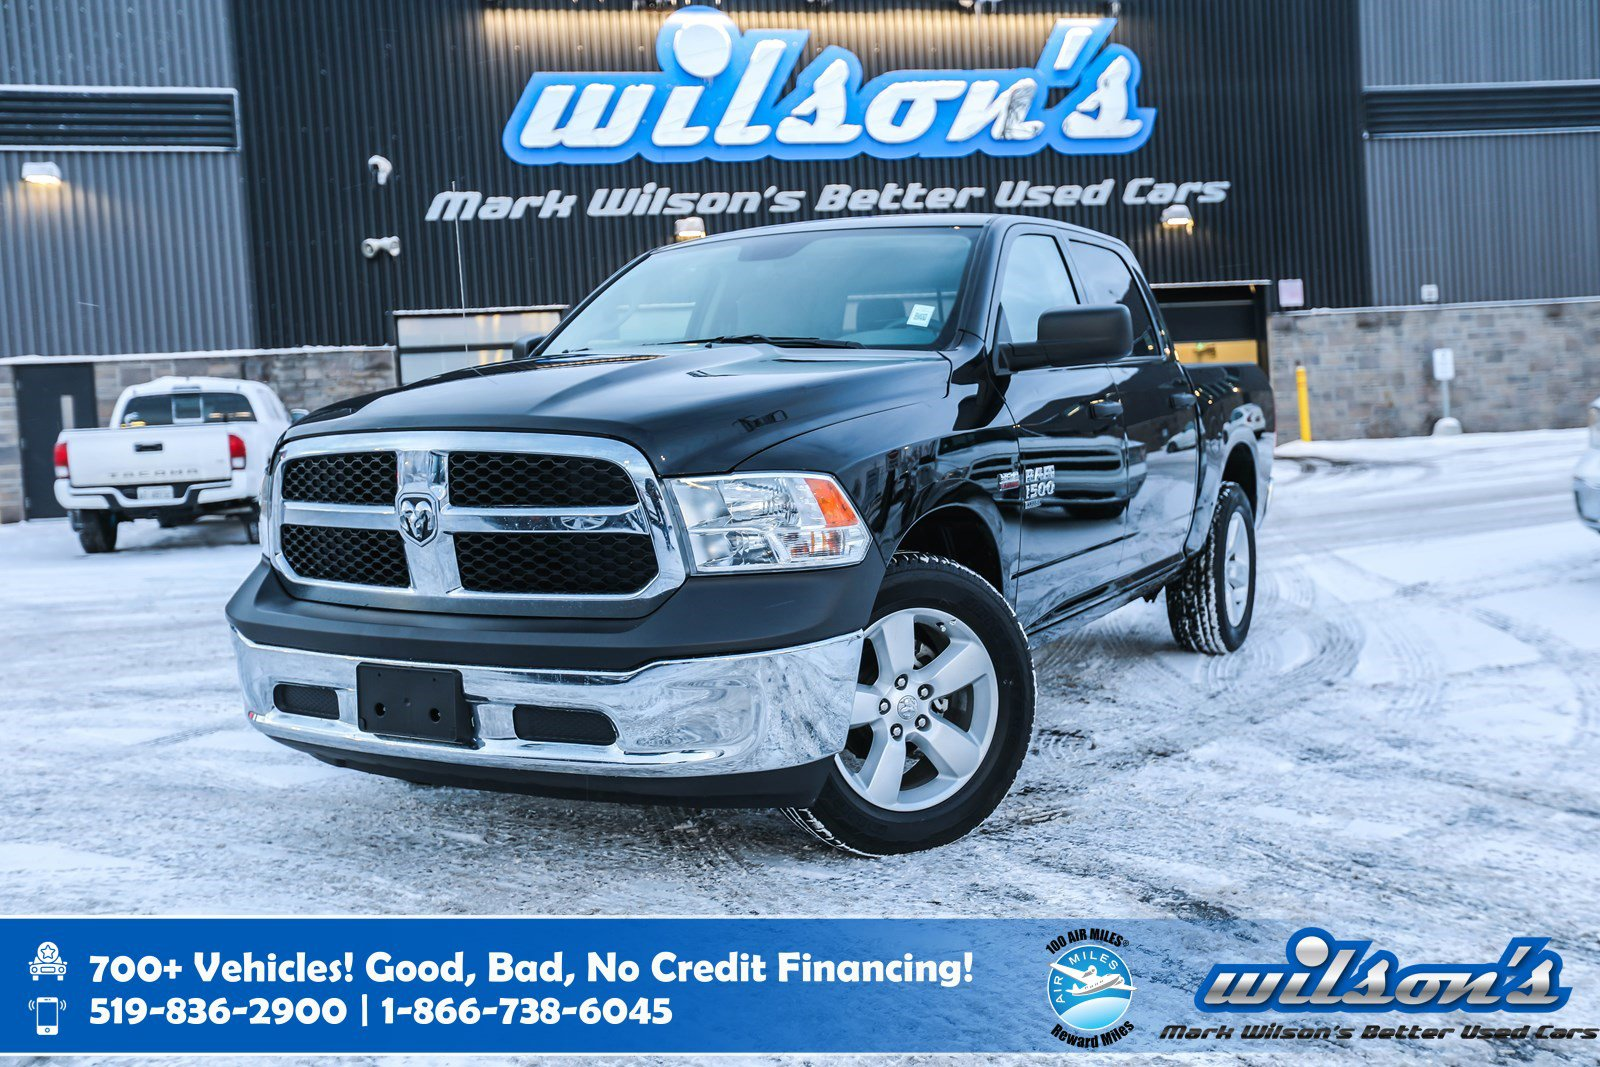 """Certified Pre-Owned 2019 Ram 1500 Classic SLT Crew Cab 4x4 Hemi, Bluetooth, Rear Camera, 20"""" Alloy Wheels and more!"""